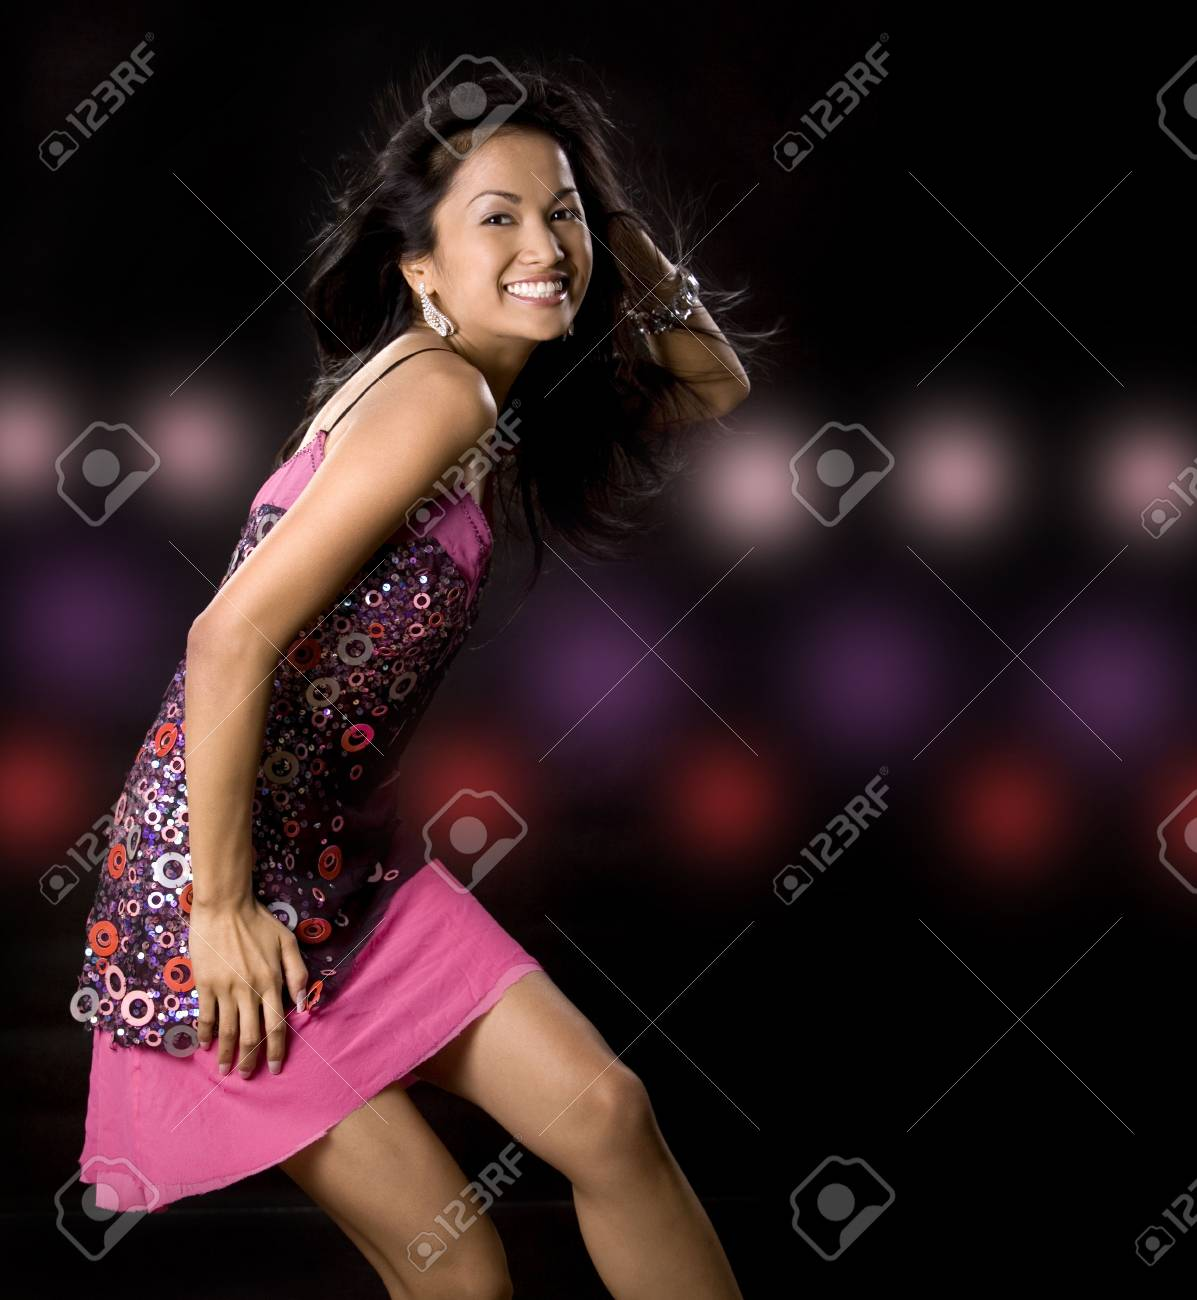 pretty brunette woman having fun on black background Stock Photo - 5581609